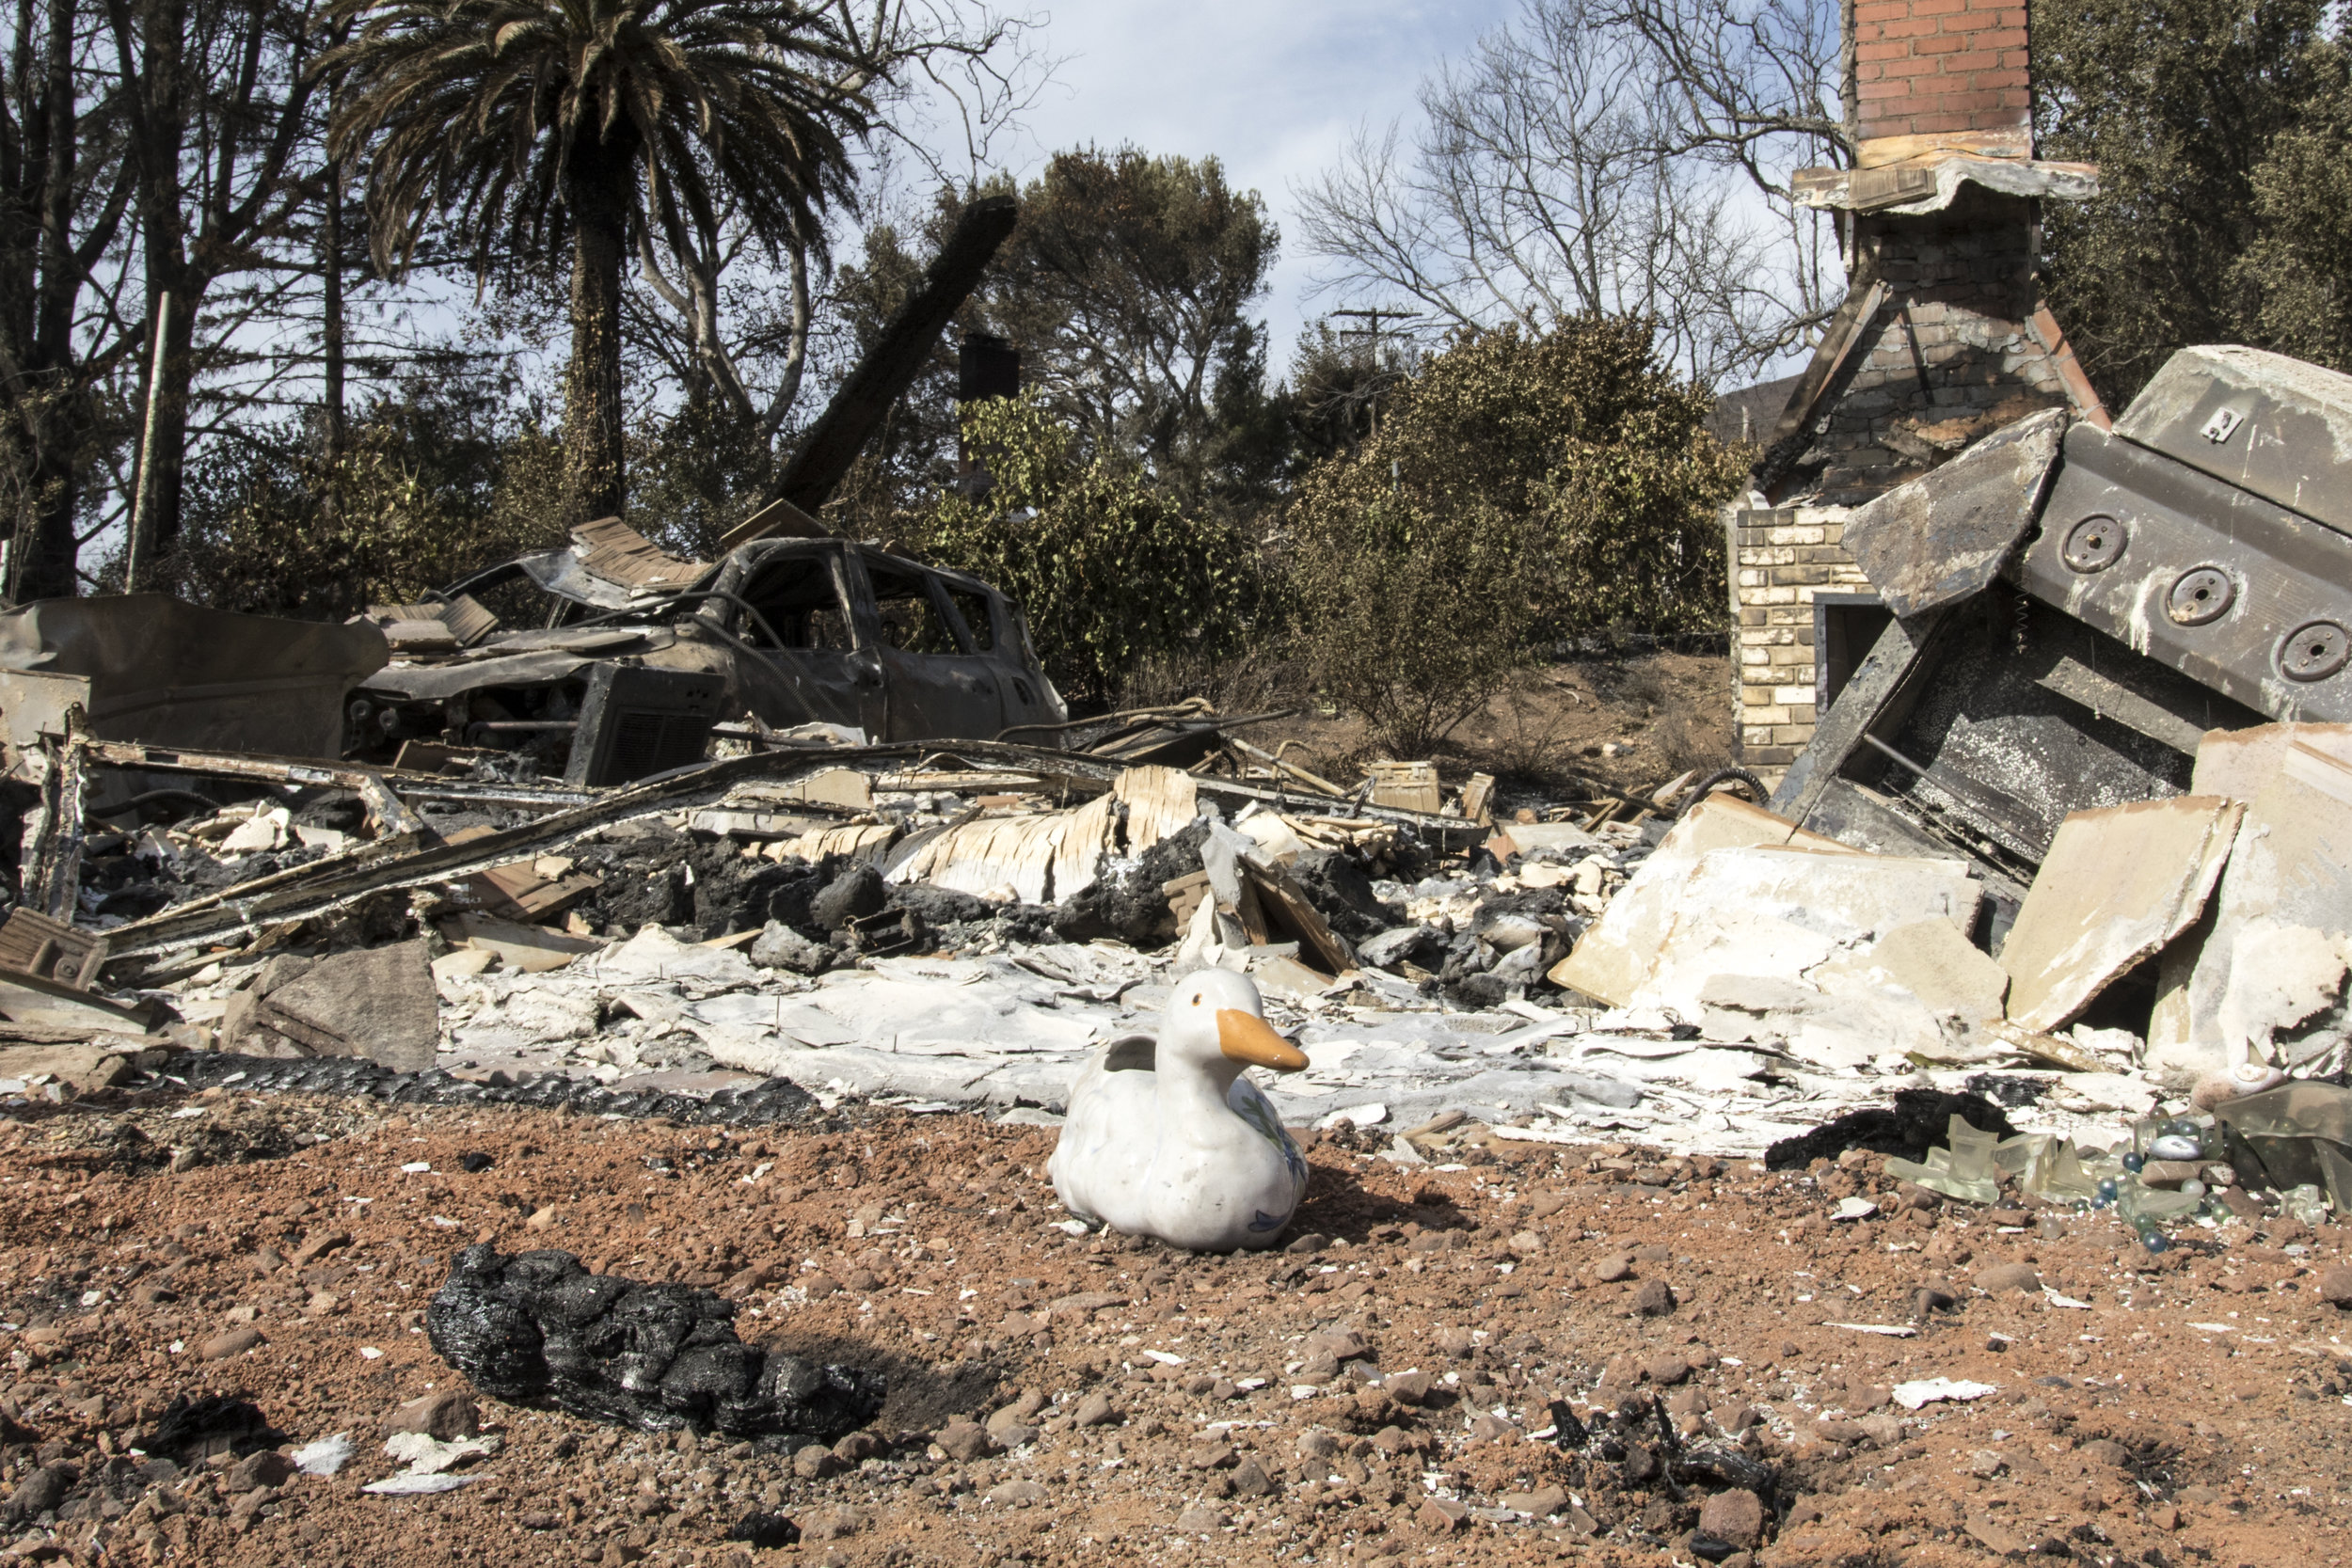 The remnants of a house burned to the ground by the Woolsey Fire in Malibu, California on November 13, 2018 (Zane Meyer-Thornton/Corsair Photo)